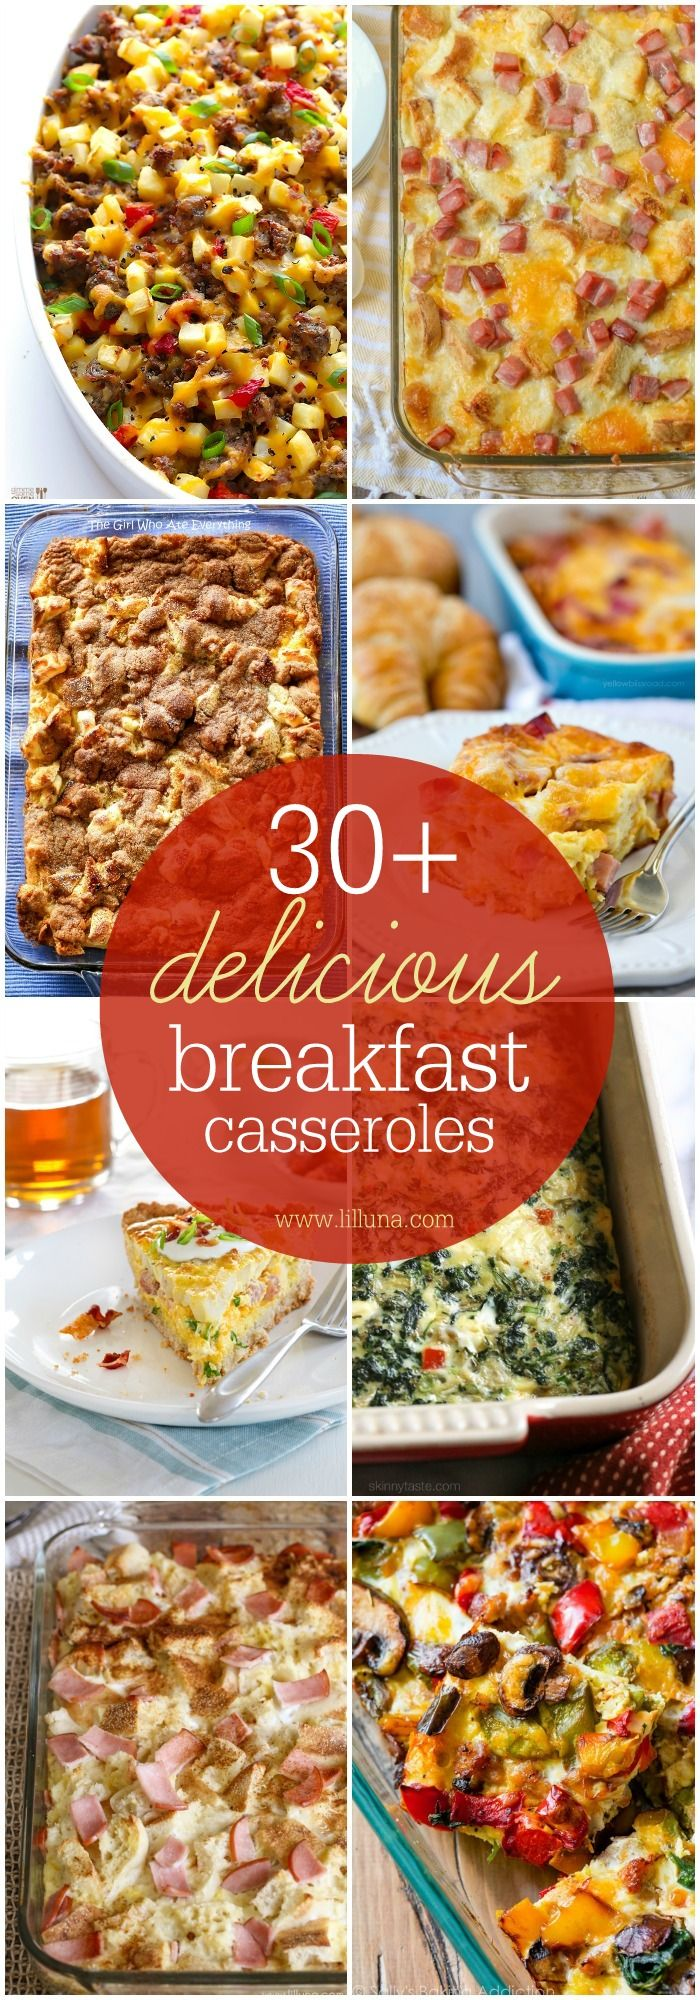 30+ Delicious Sweet and Savory breakfast casserole recipes! So many different recipes to please everyone!